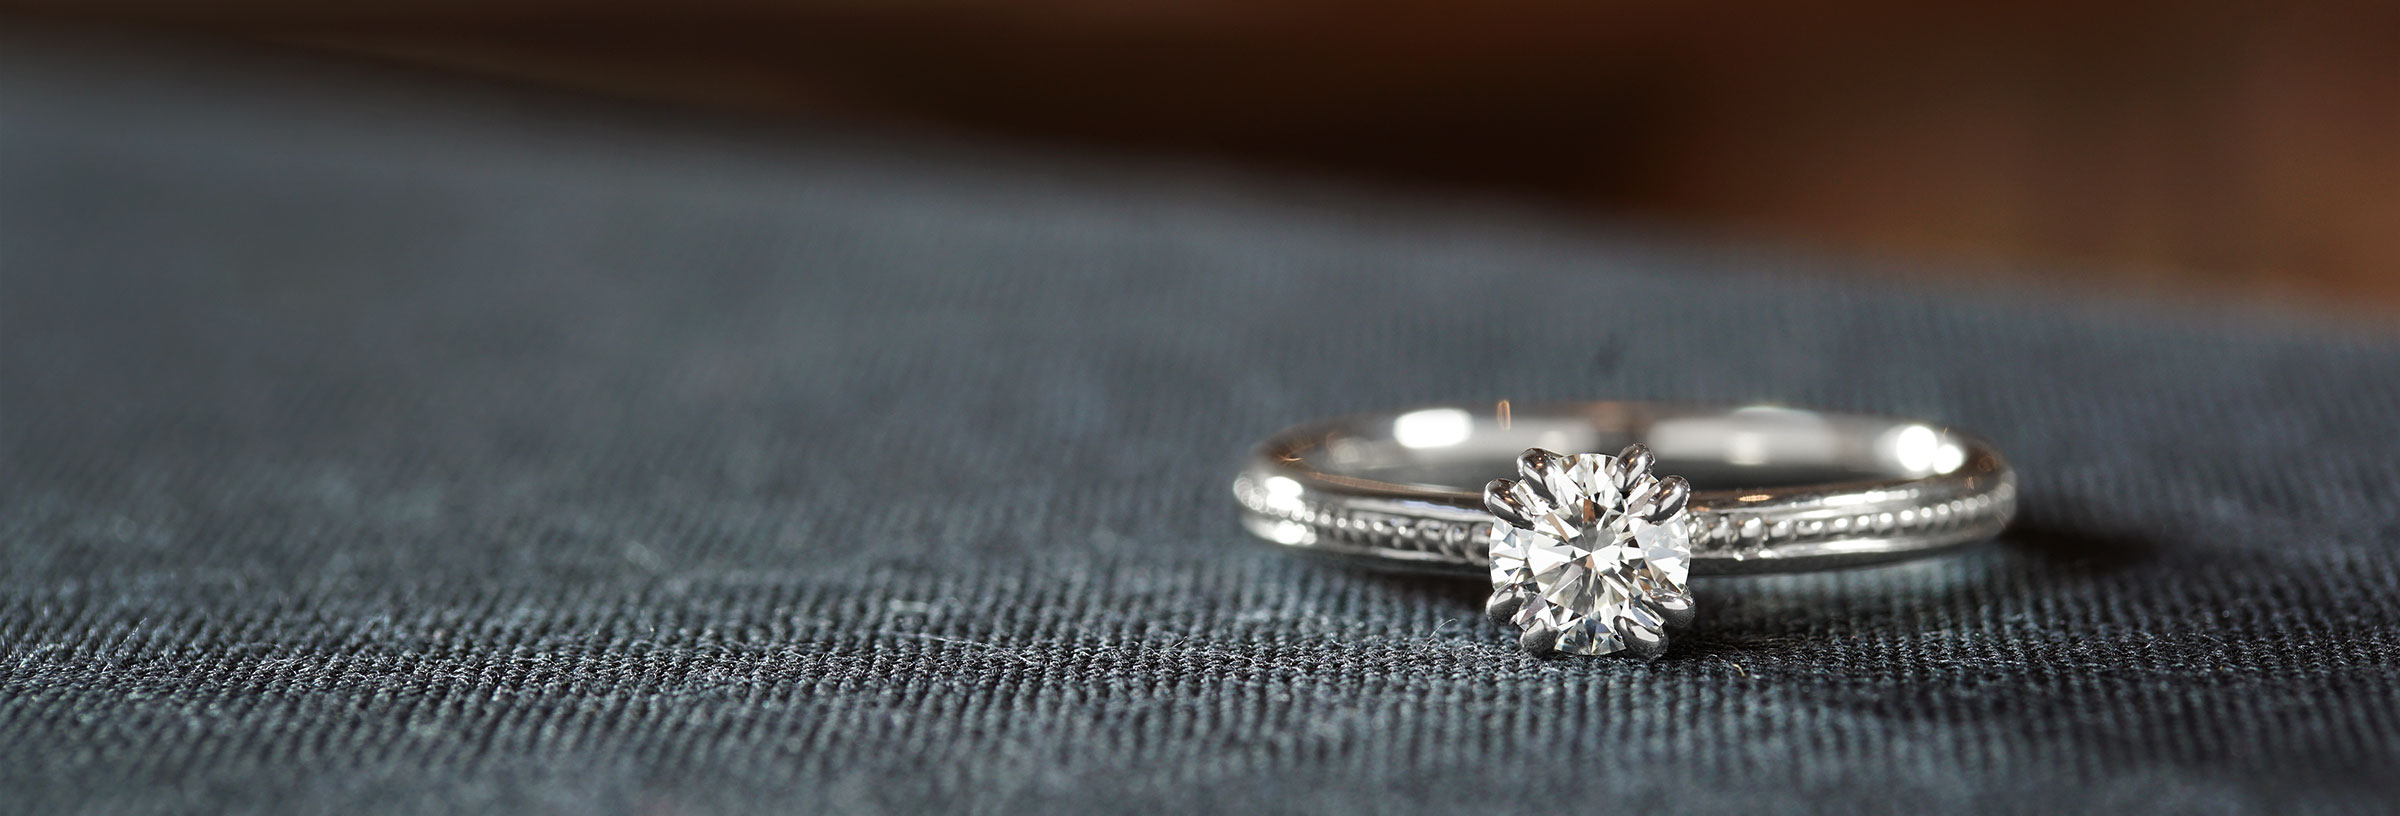 palladium-double-claw-engagement-ring-with-beaded-band